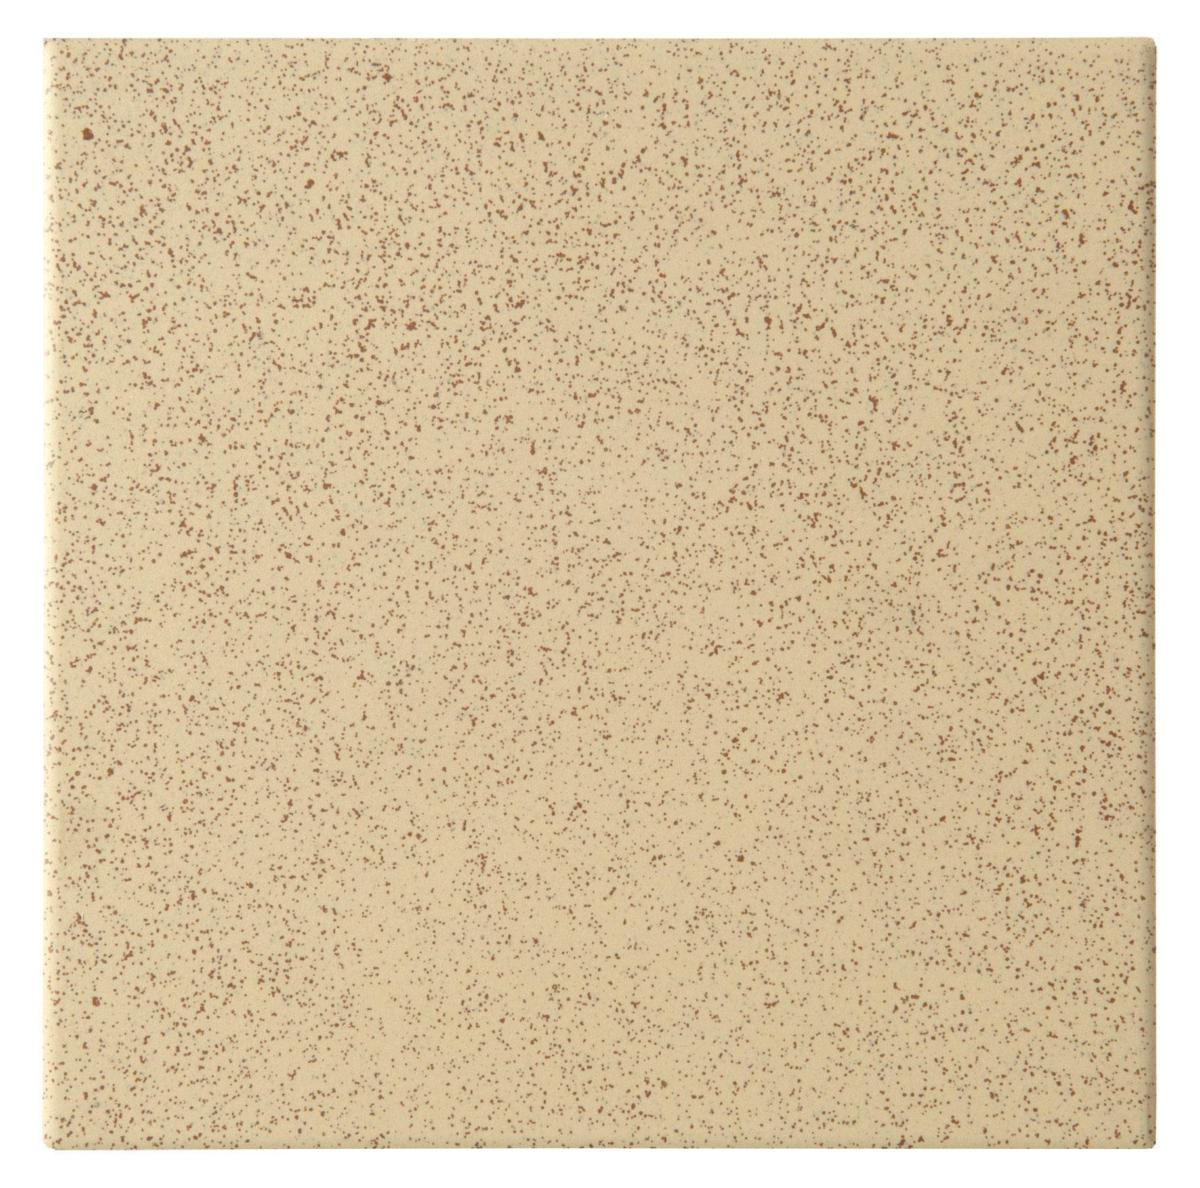 Dorset Flat Stone Quarry Tile 15x15cm Tiles Ahead